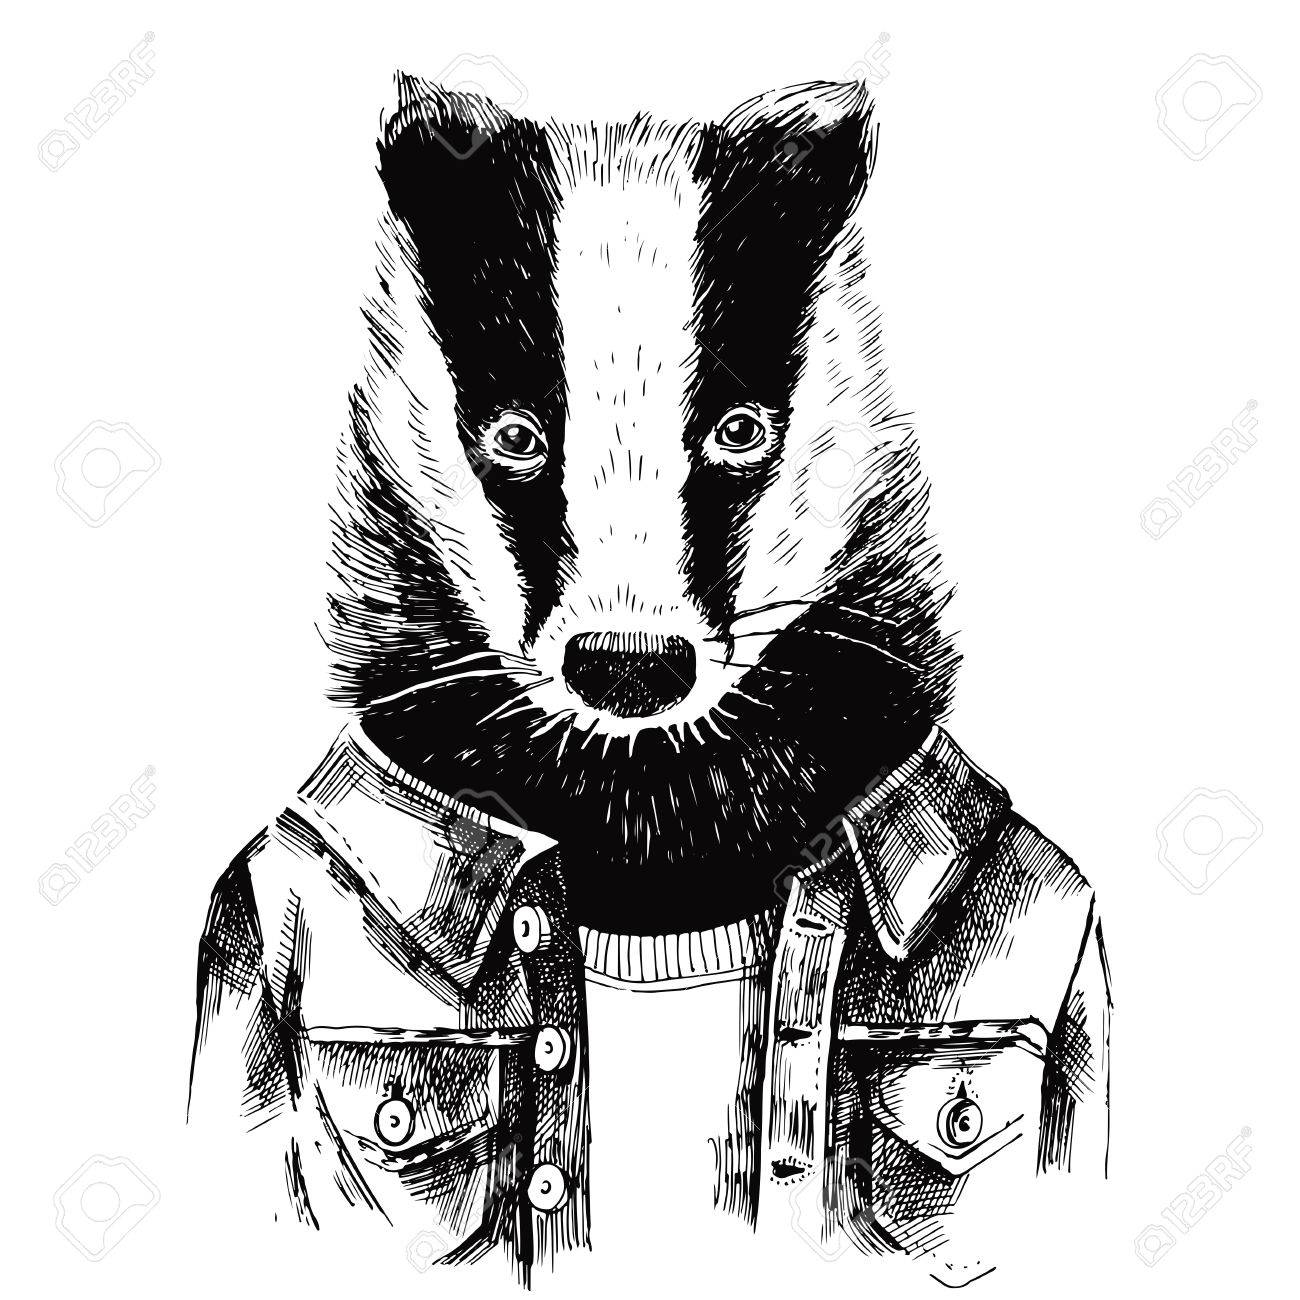 Hand drawn dressed up black and white badger in hipster style - 64111104